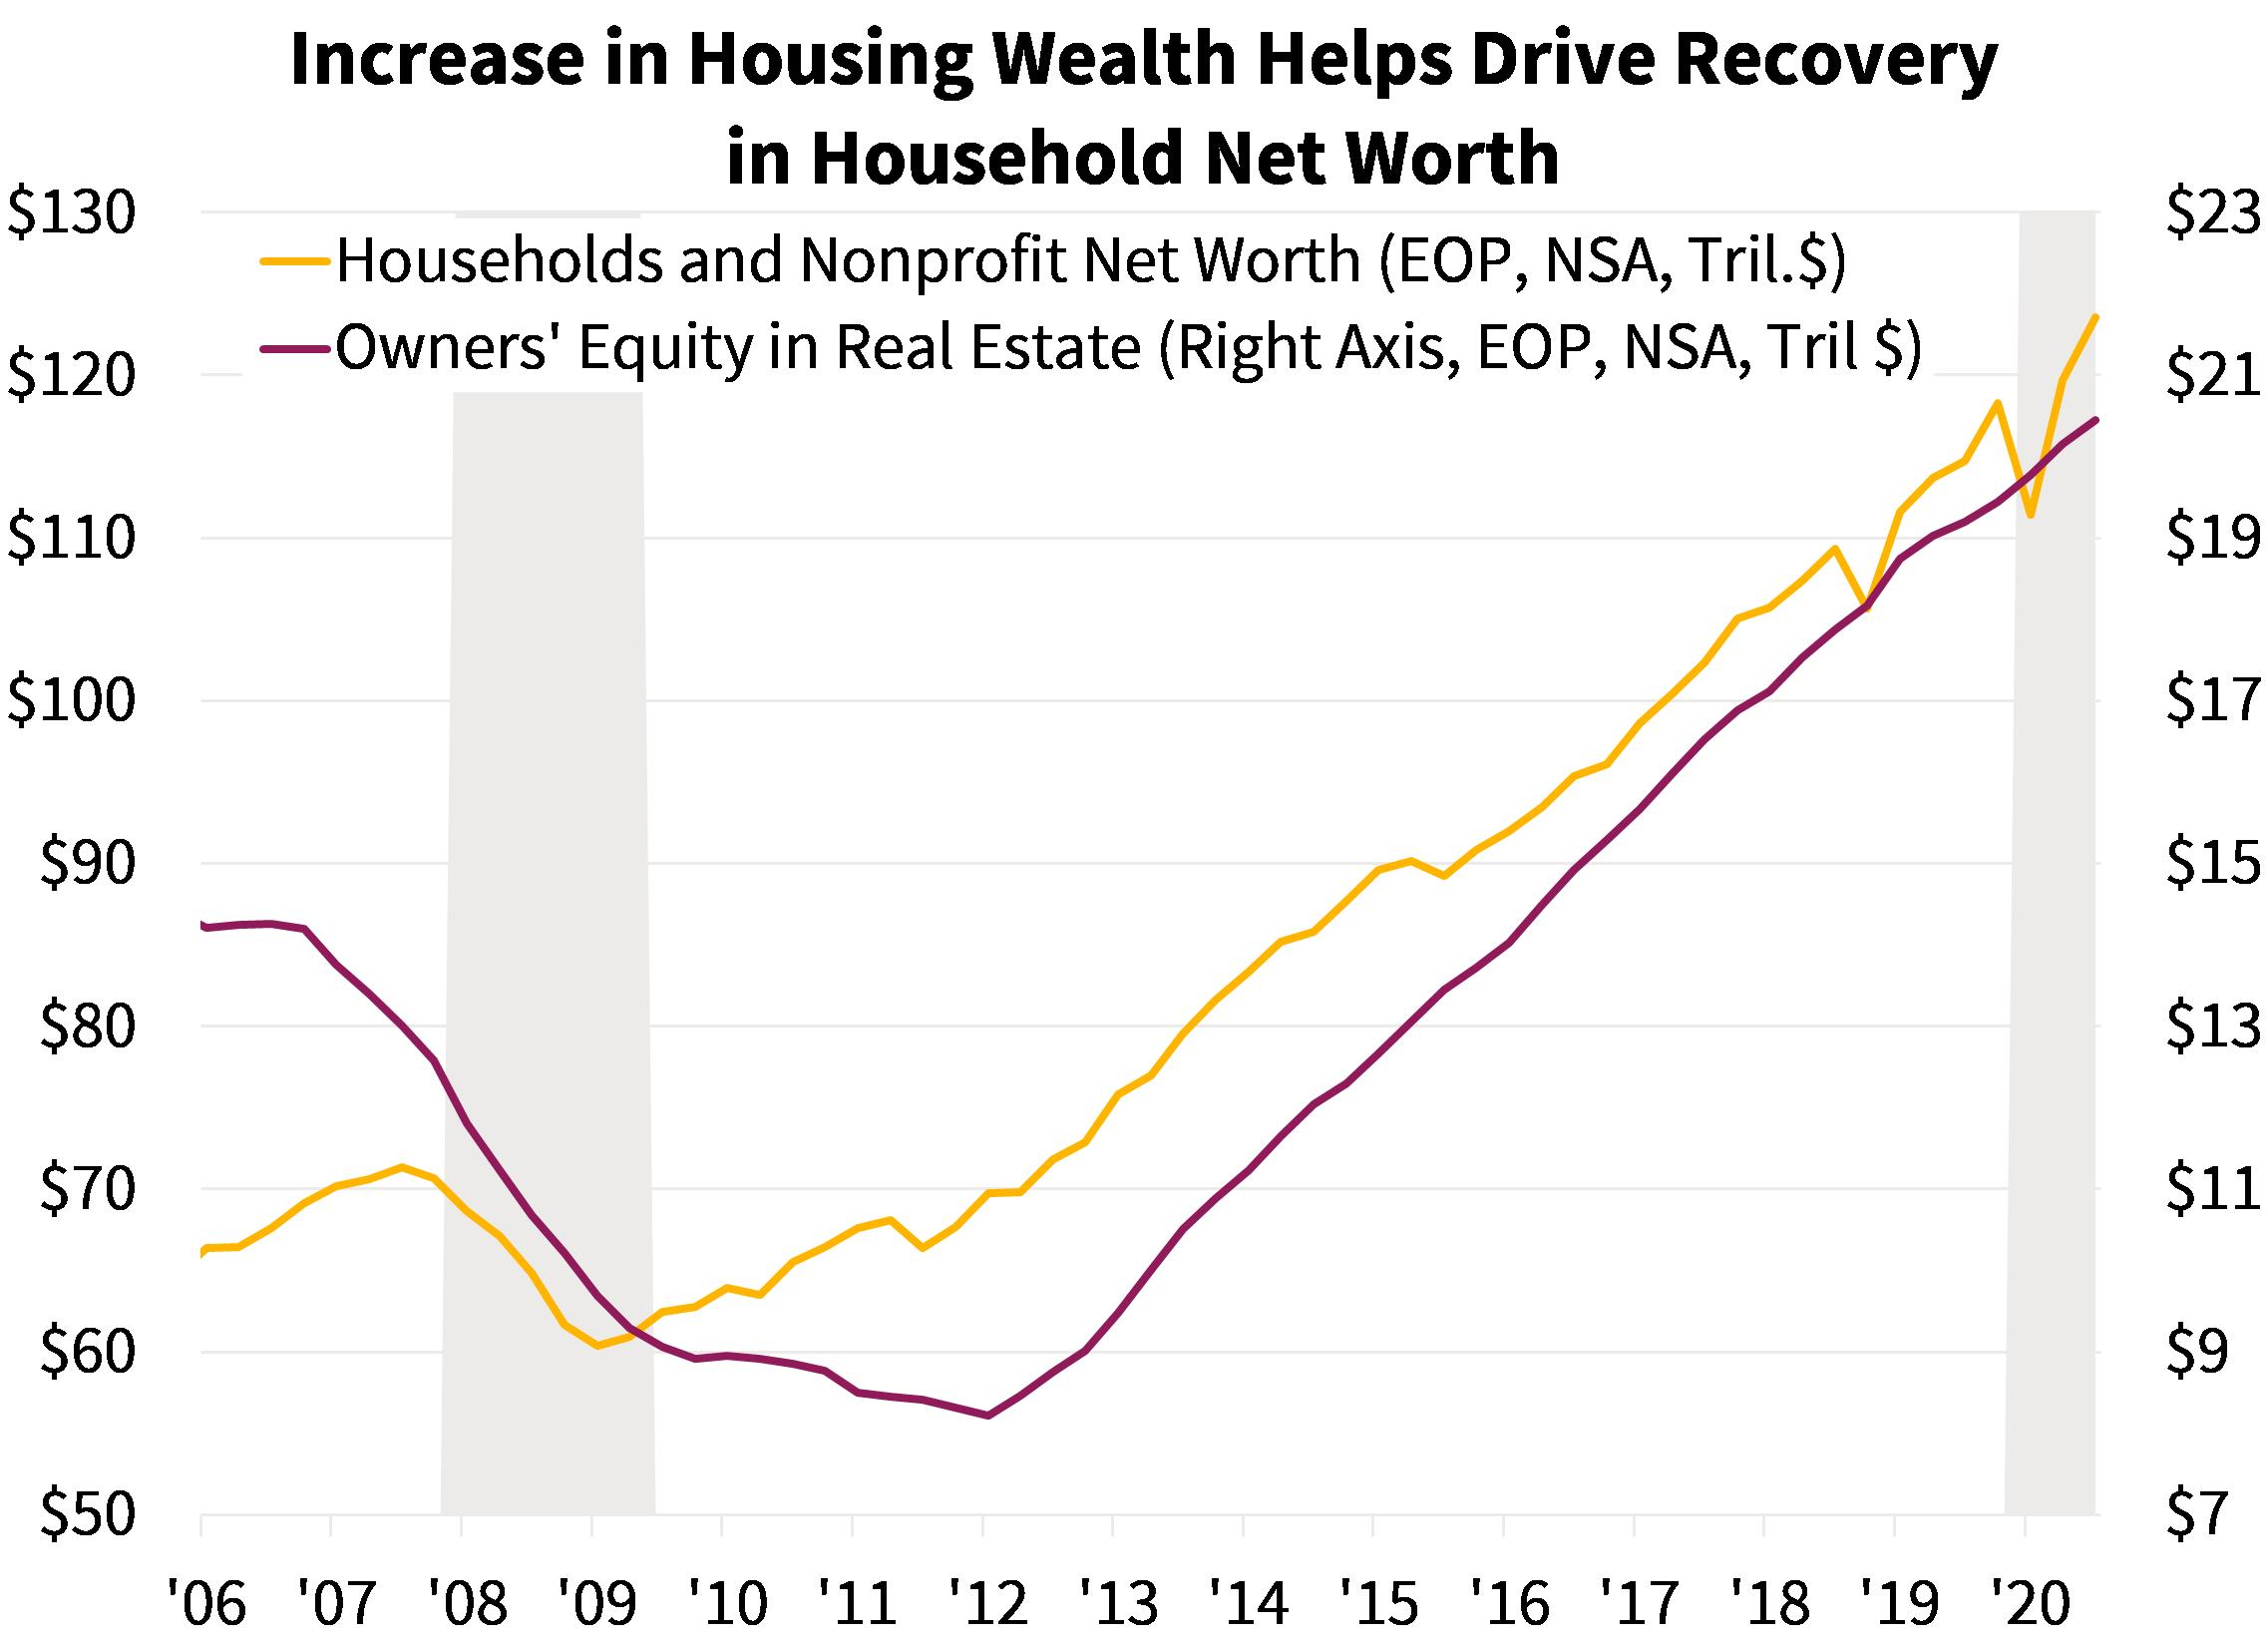 Increase in Housing Wealth Helps Drive Recovery in Household Net Worth